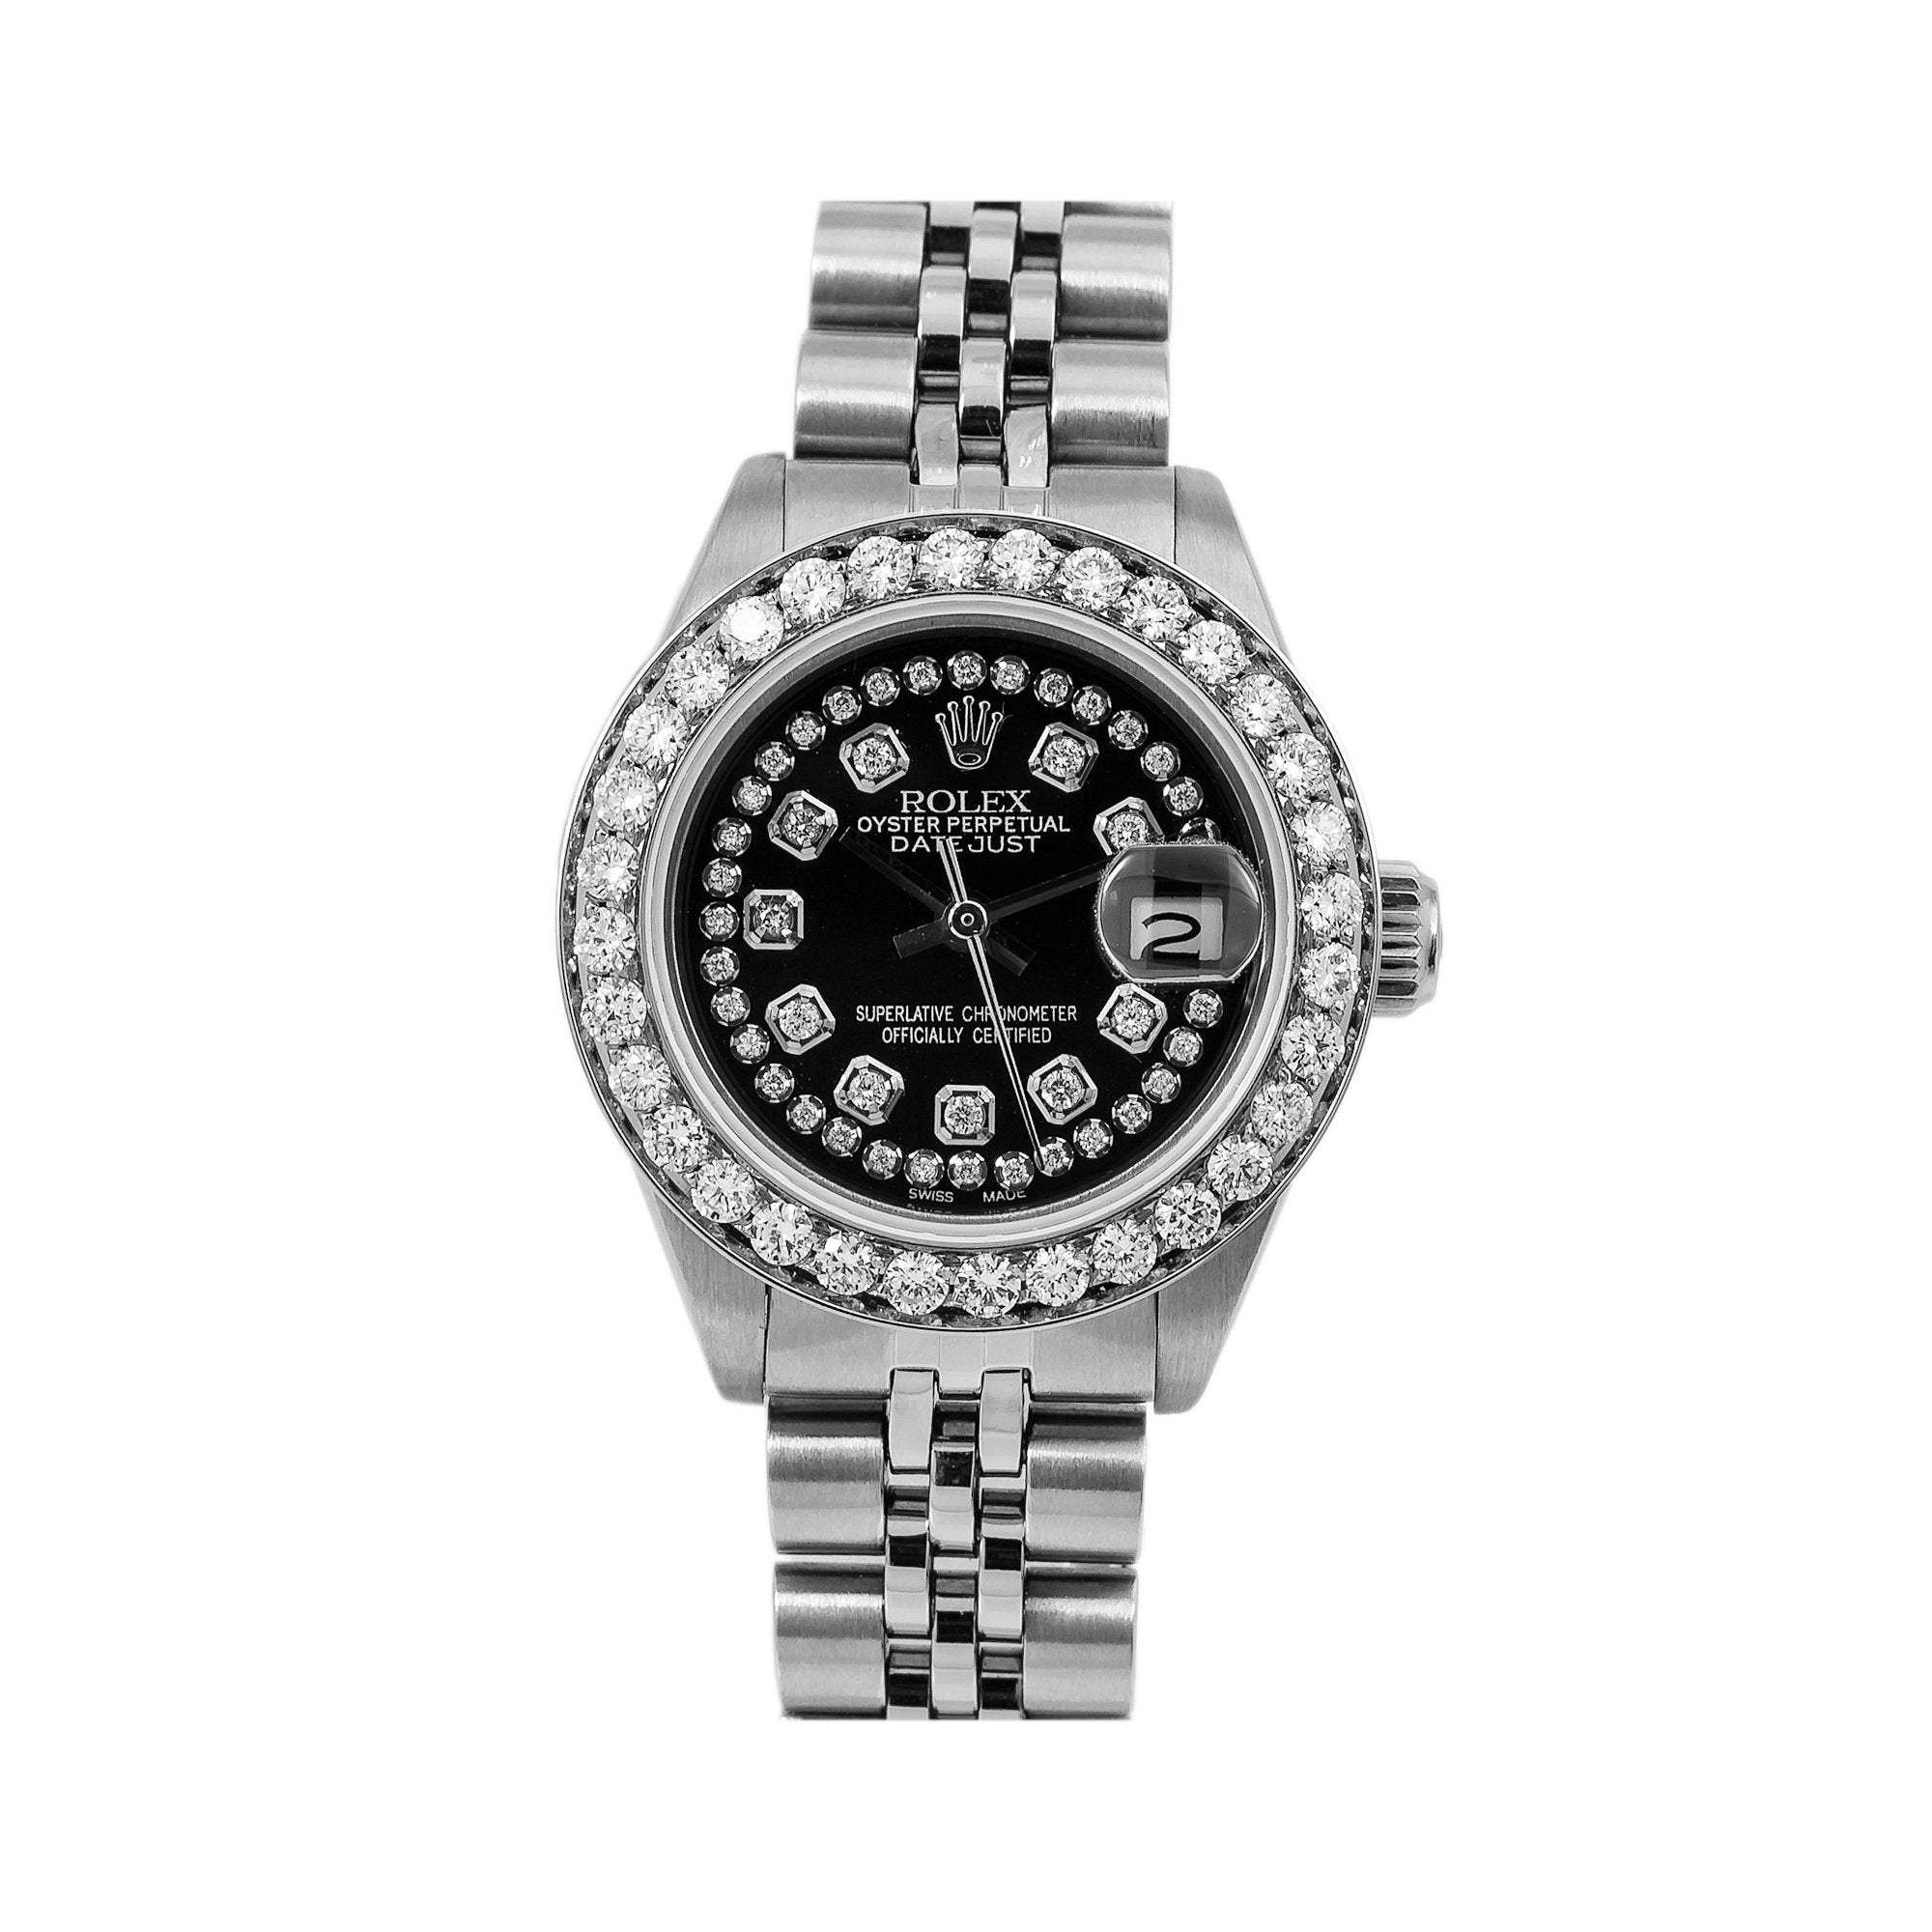 Rolex Lady-Datejust Diamond Watch, 6917 26mm, Black Diamond Dial With 2.25 CT Diamonds Jubilee Bracelet